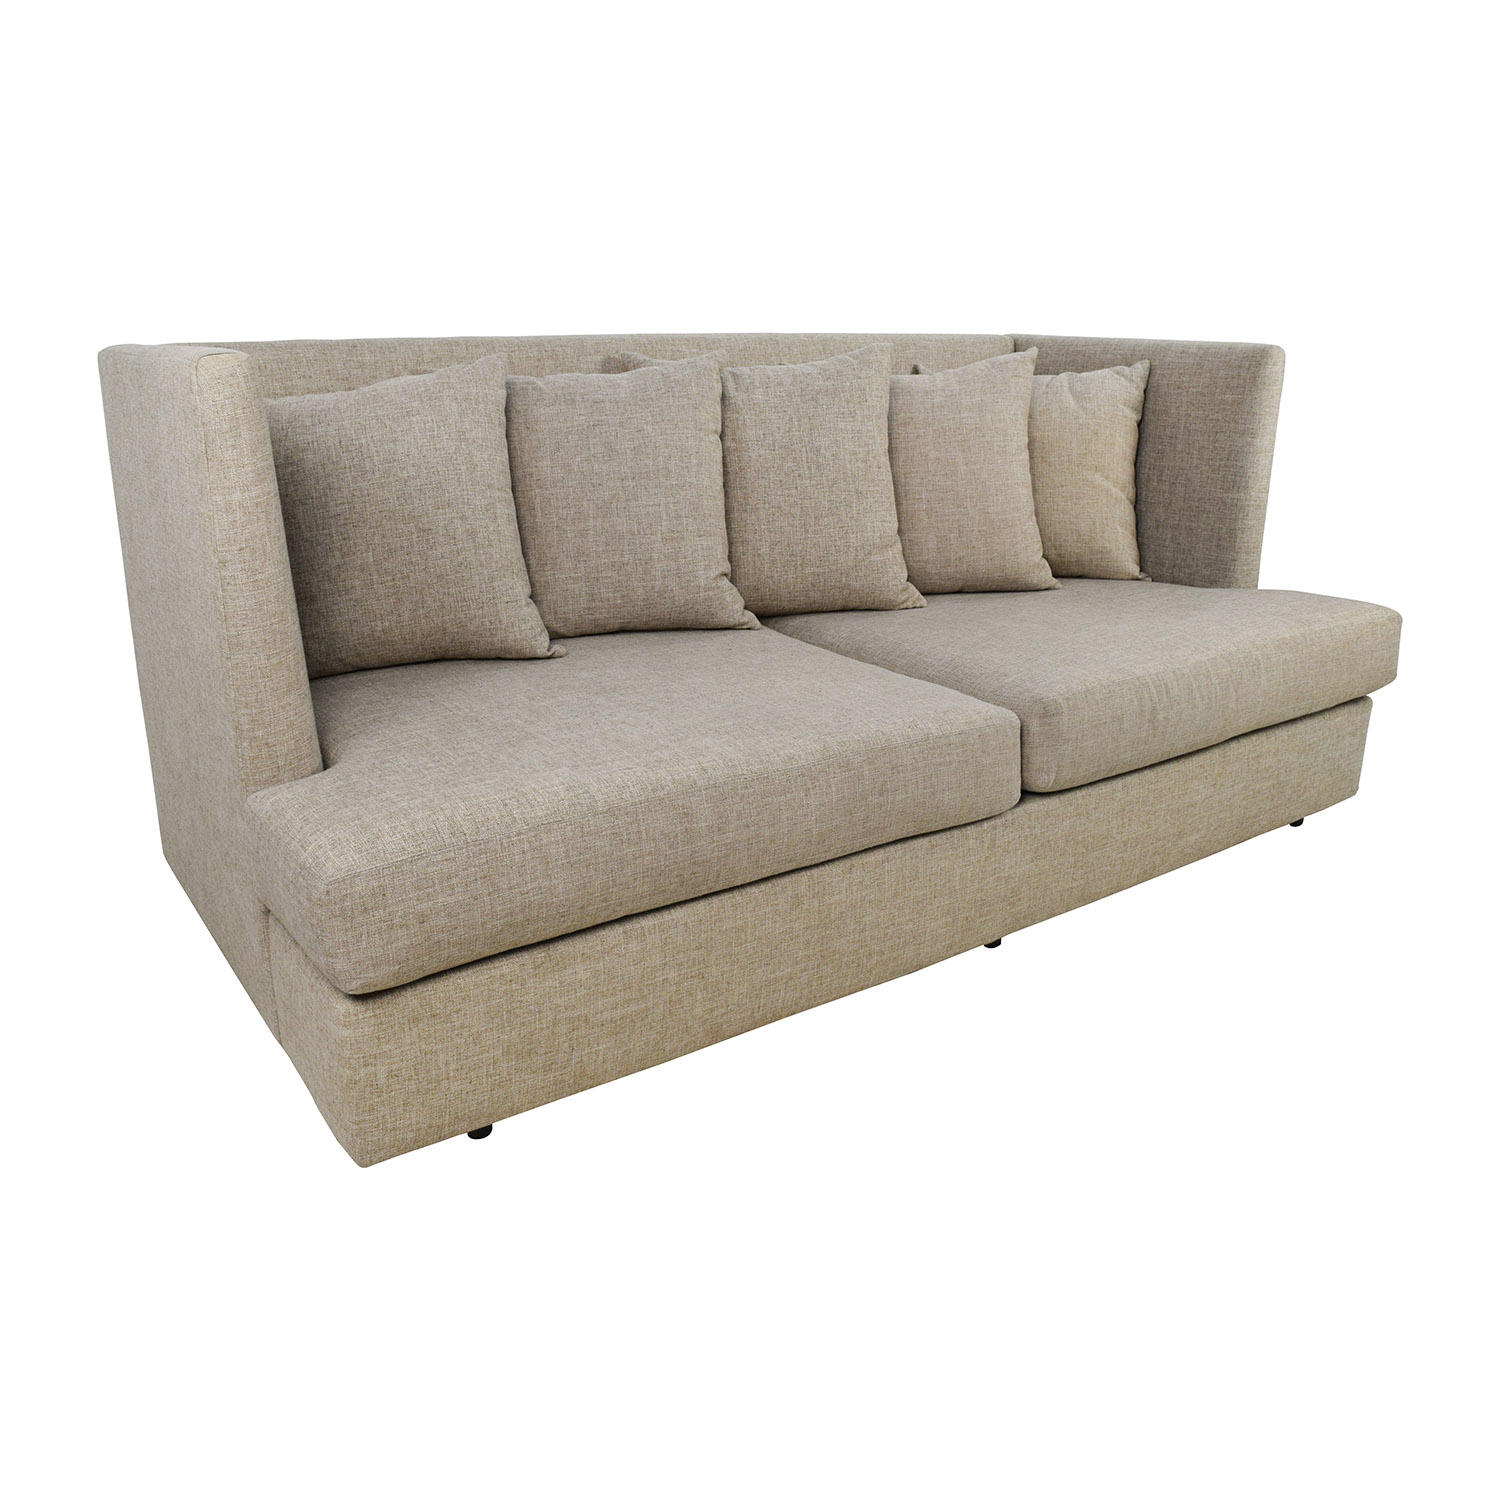 Crate and Barrel Couch | Crate and Barrel Cameron | Crate and Barrel Custom Upholstery Sale